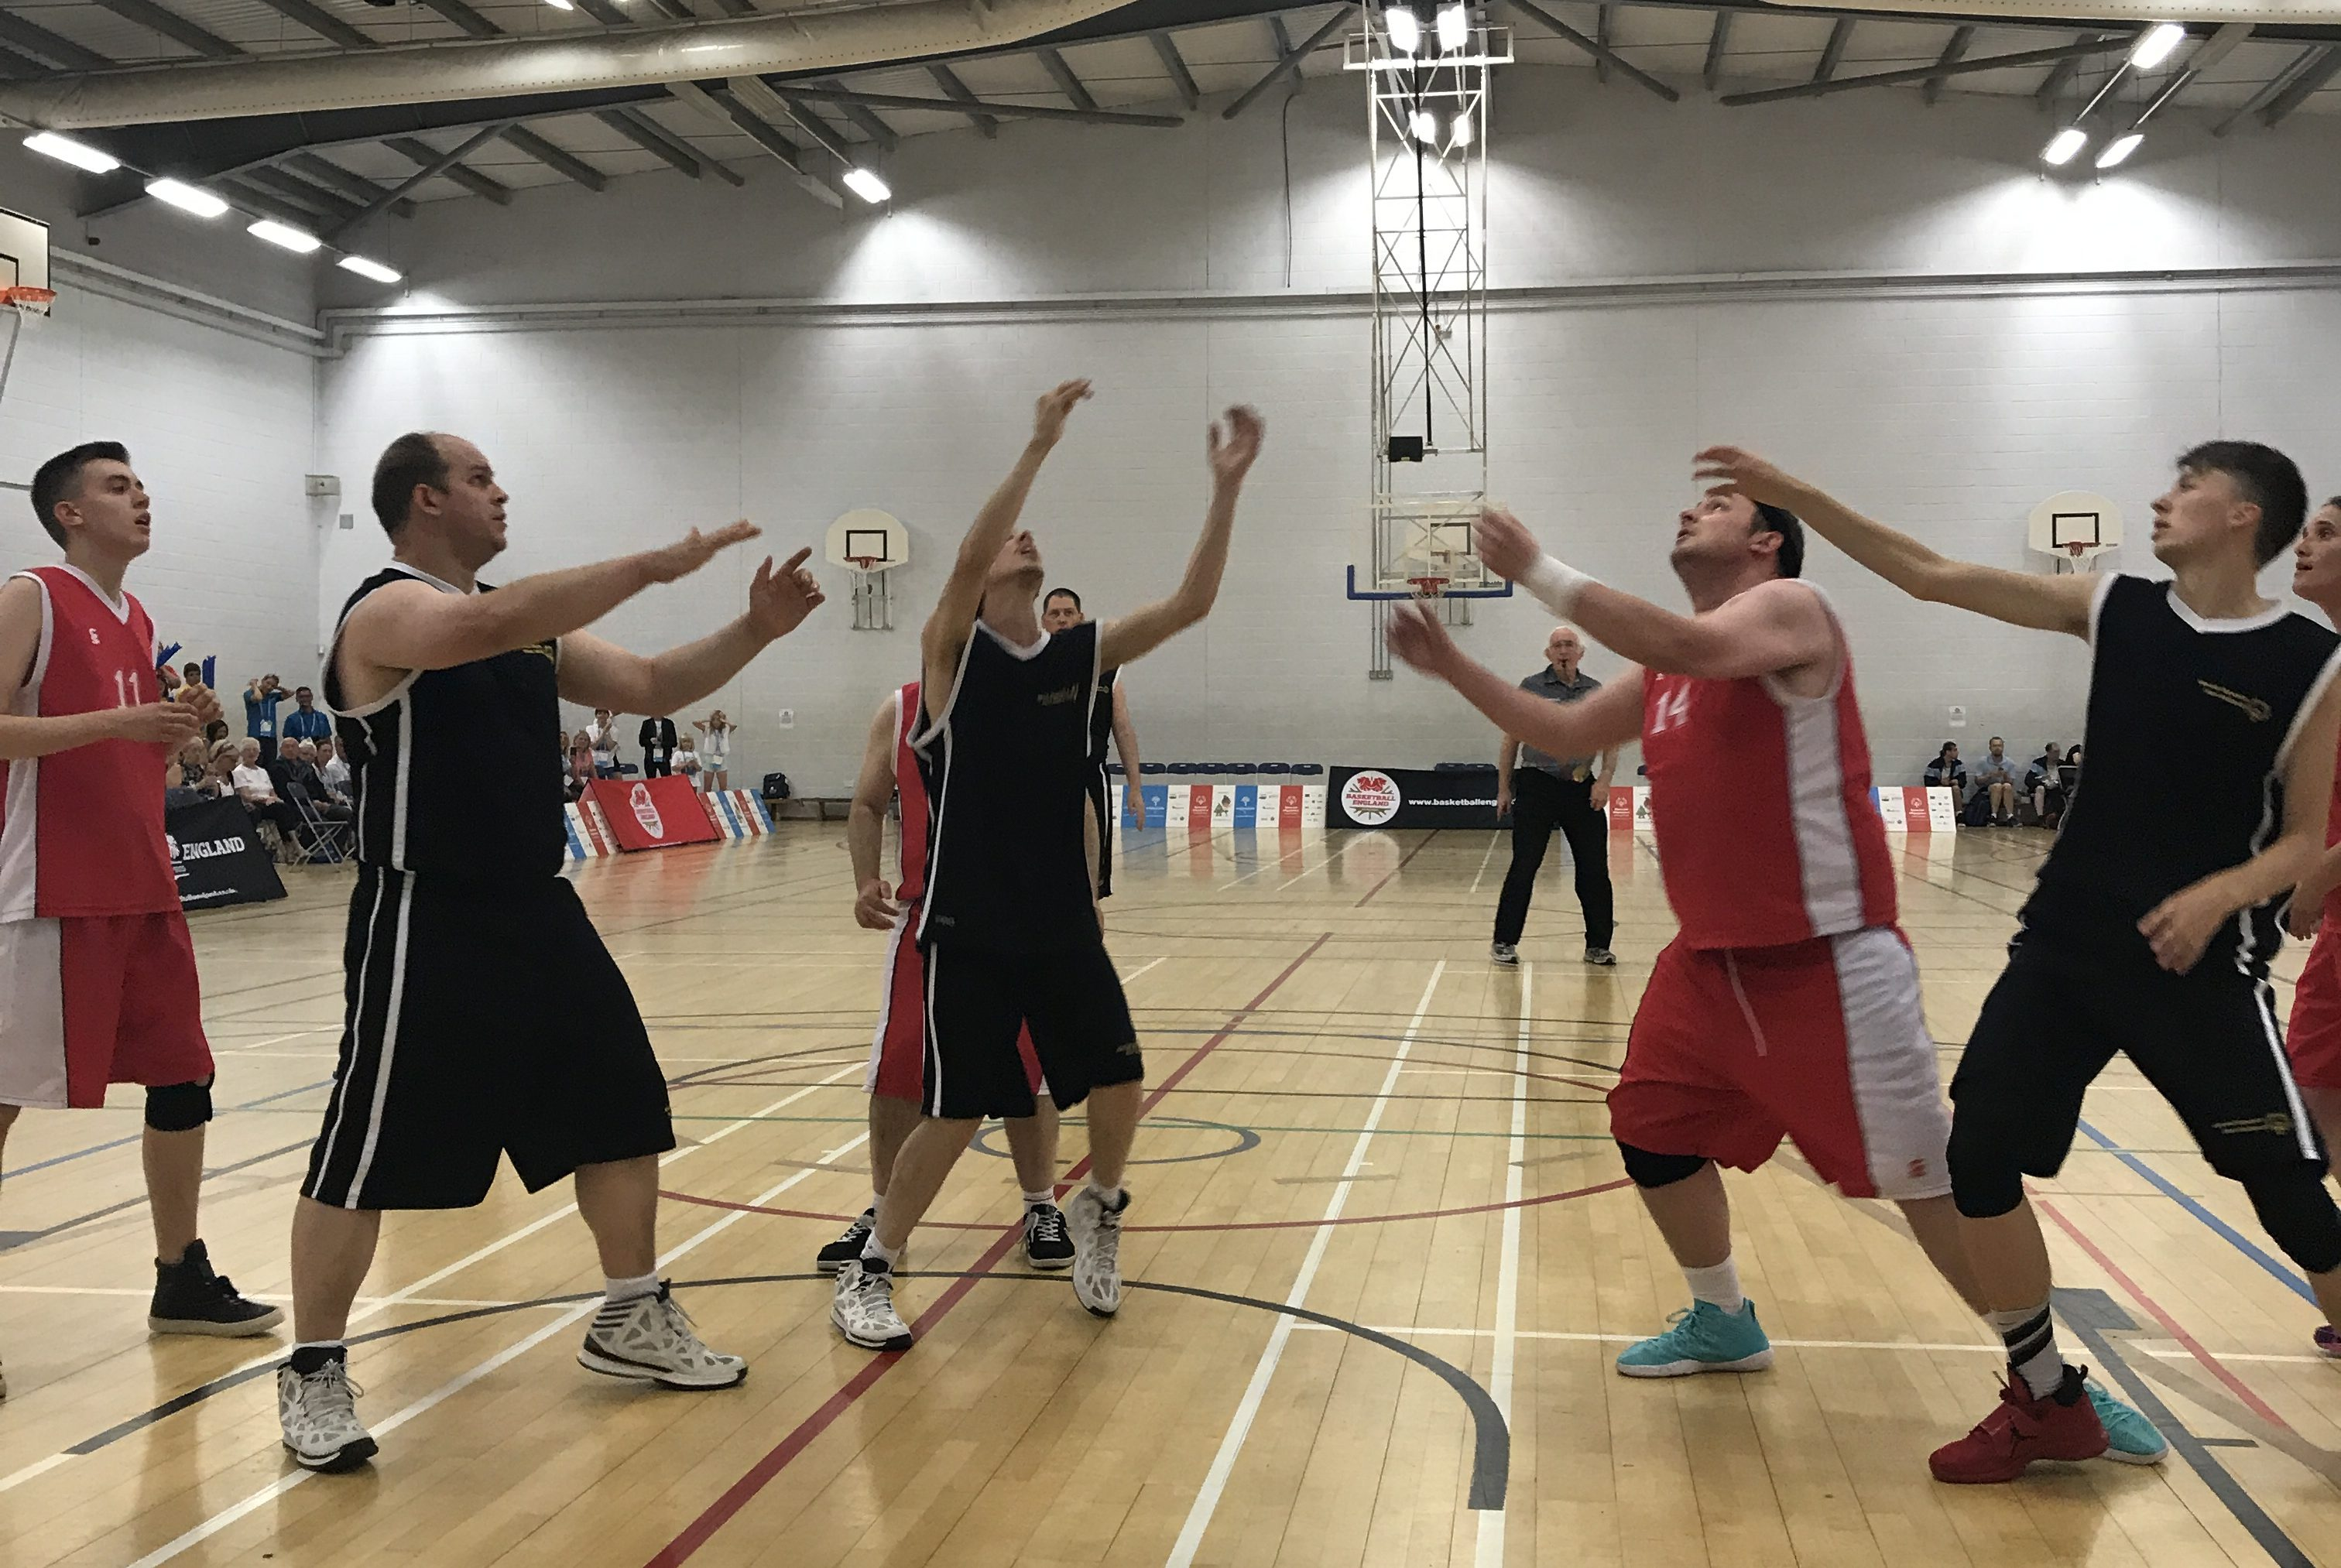 Members of Lynx basketball club attended the East Midlands Regional basketball competition on Saturday 26th January 2019.